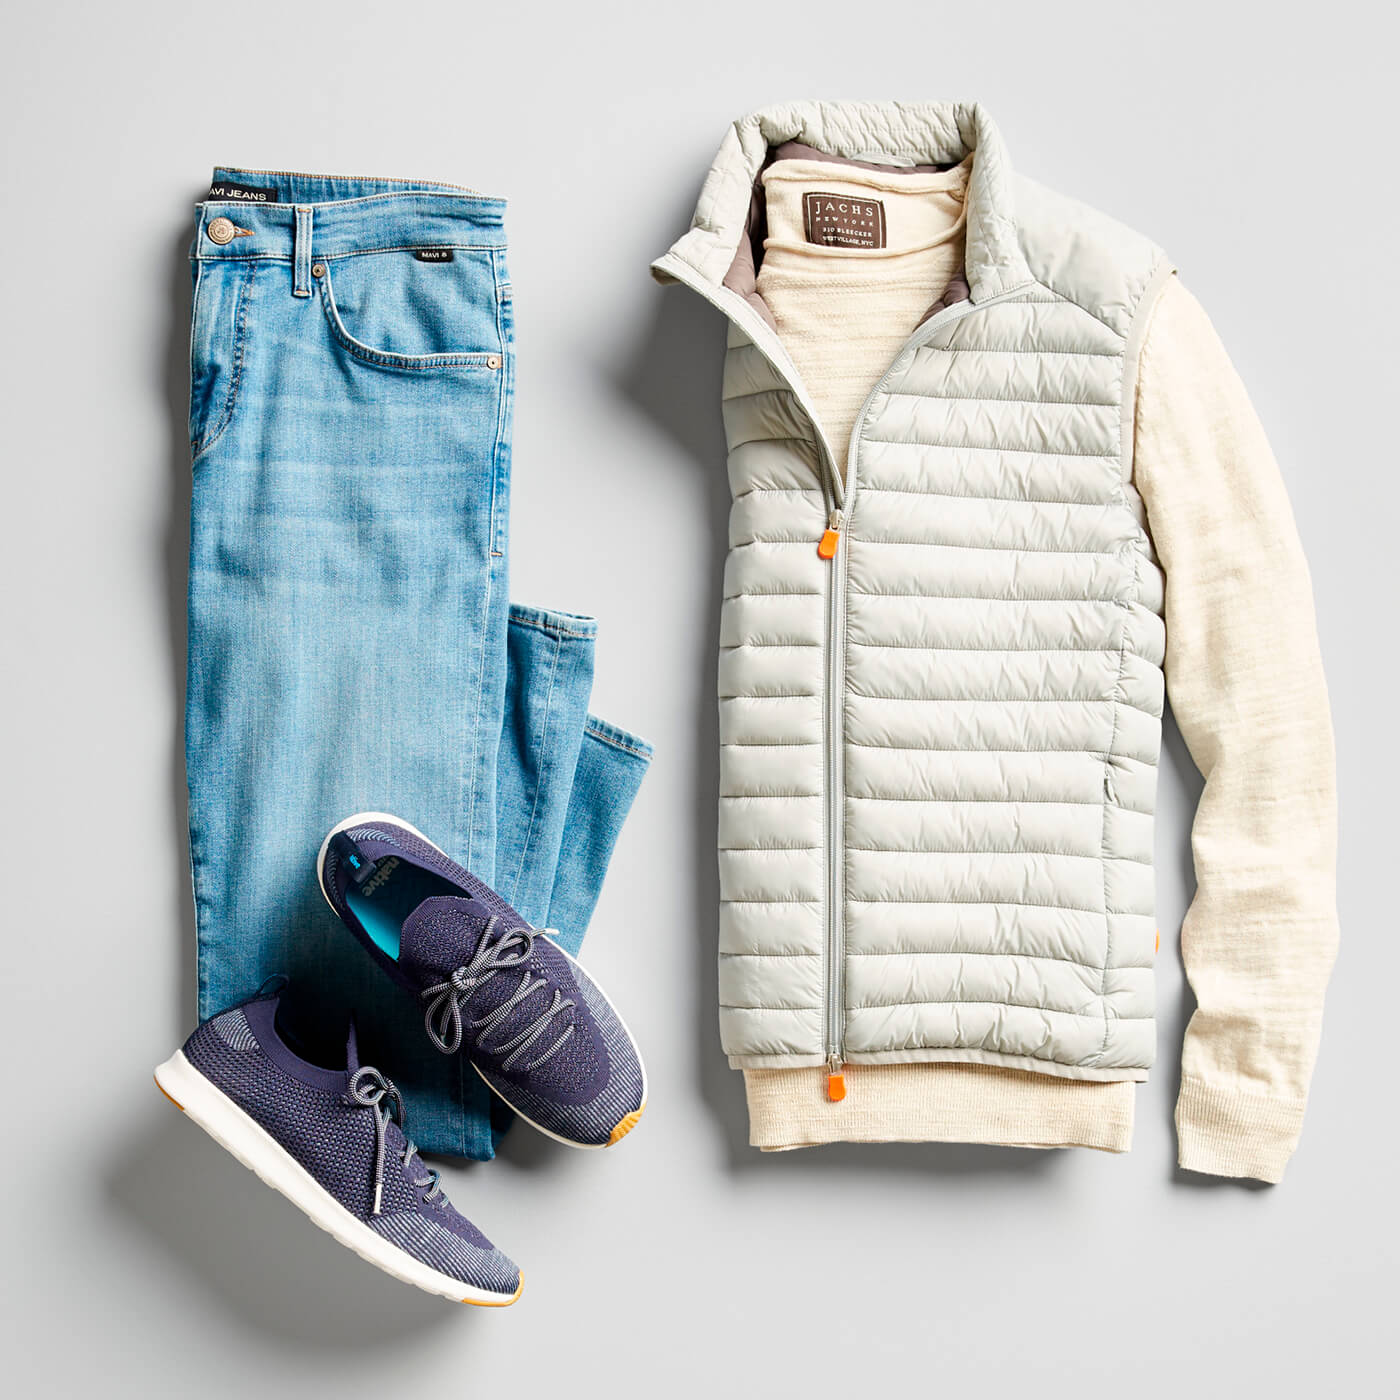 light wash jeans, blue sneakers, and light tan puffer vest